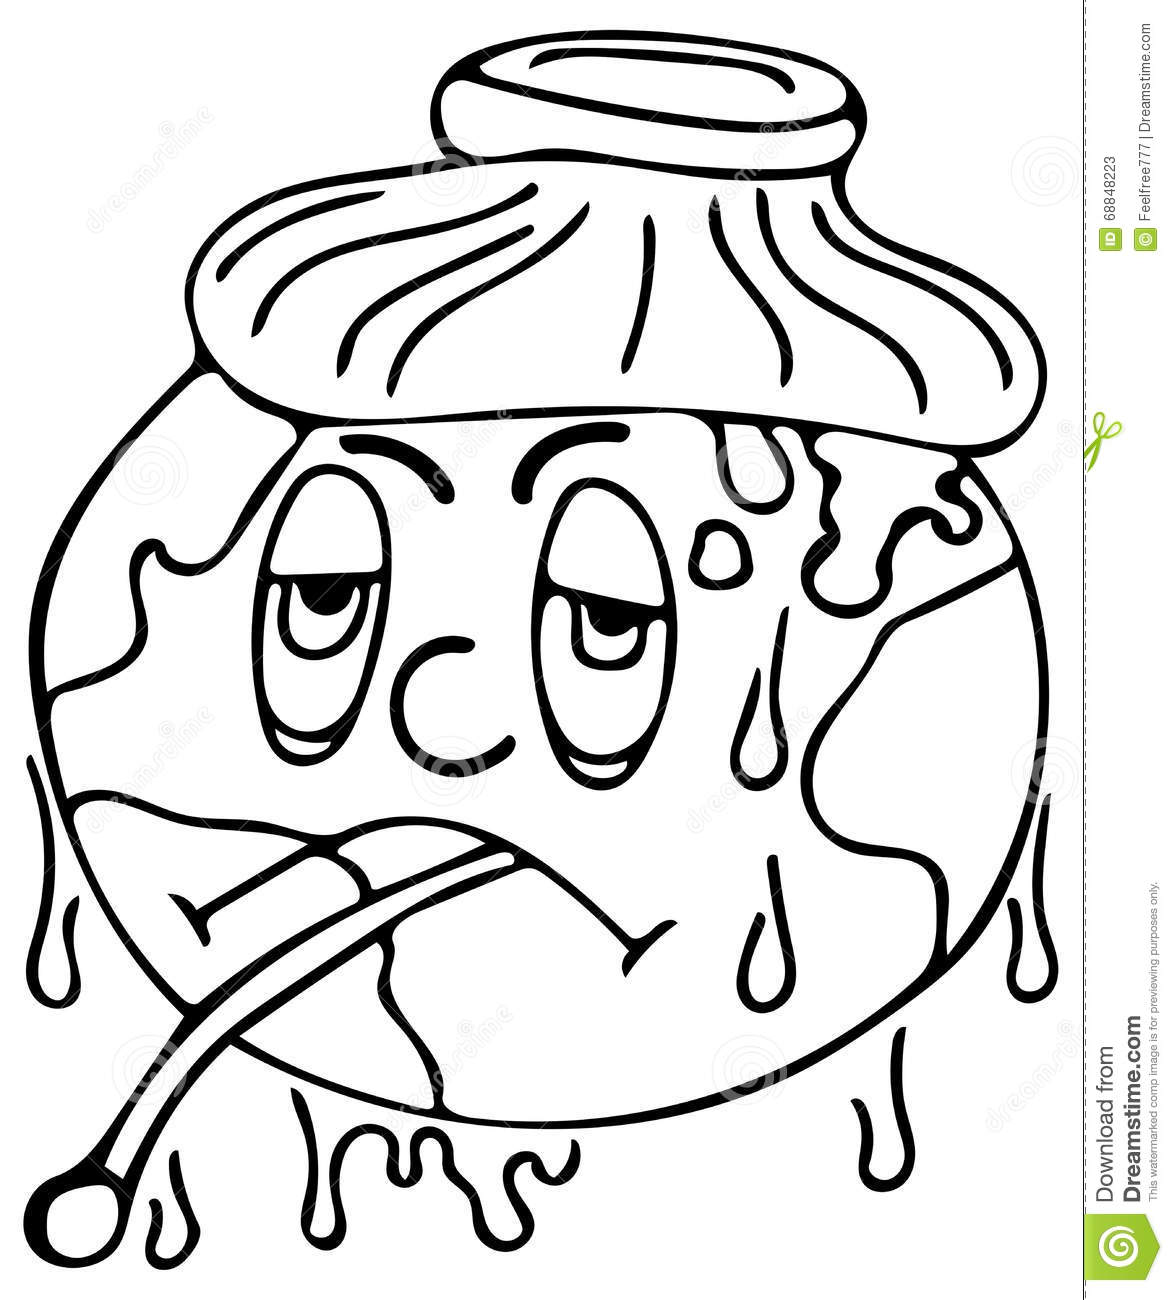 Sick world coloring pages stock illustration image 68848223 for Sick coloring pages